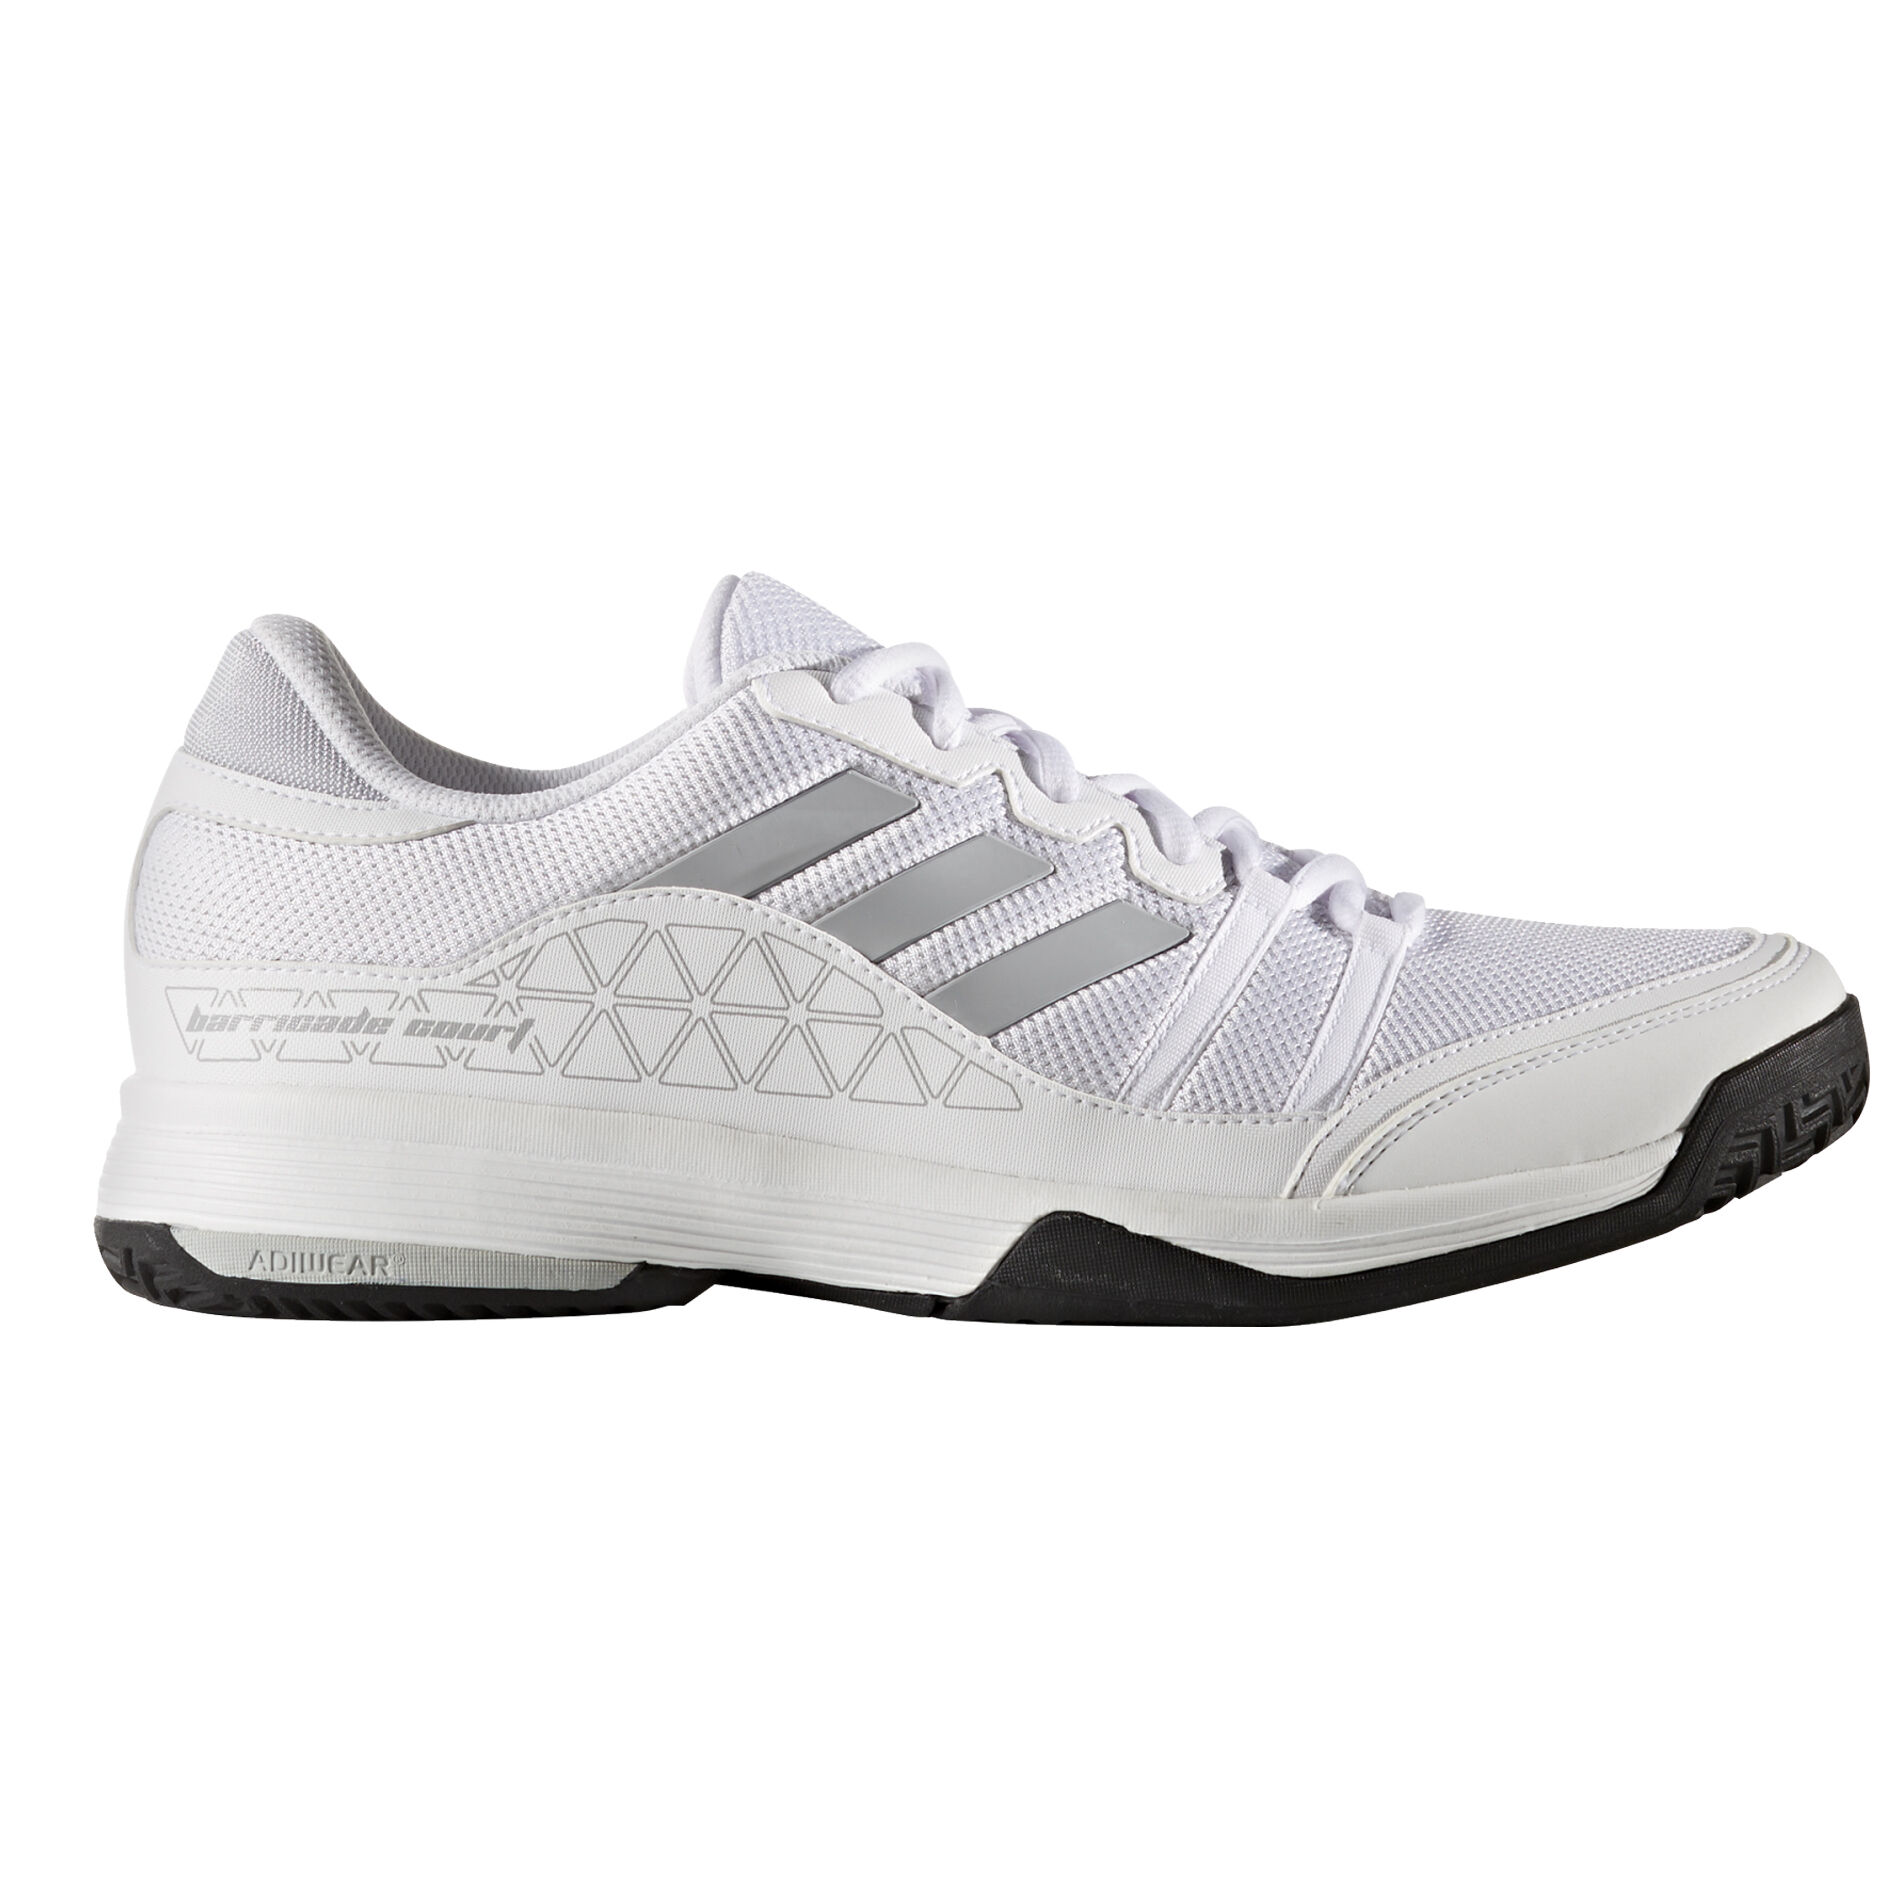 adidas Barricade Court Men's Tennis Shoe WhiteSilver